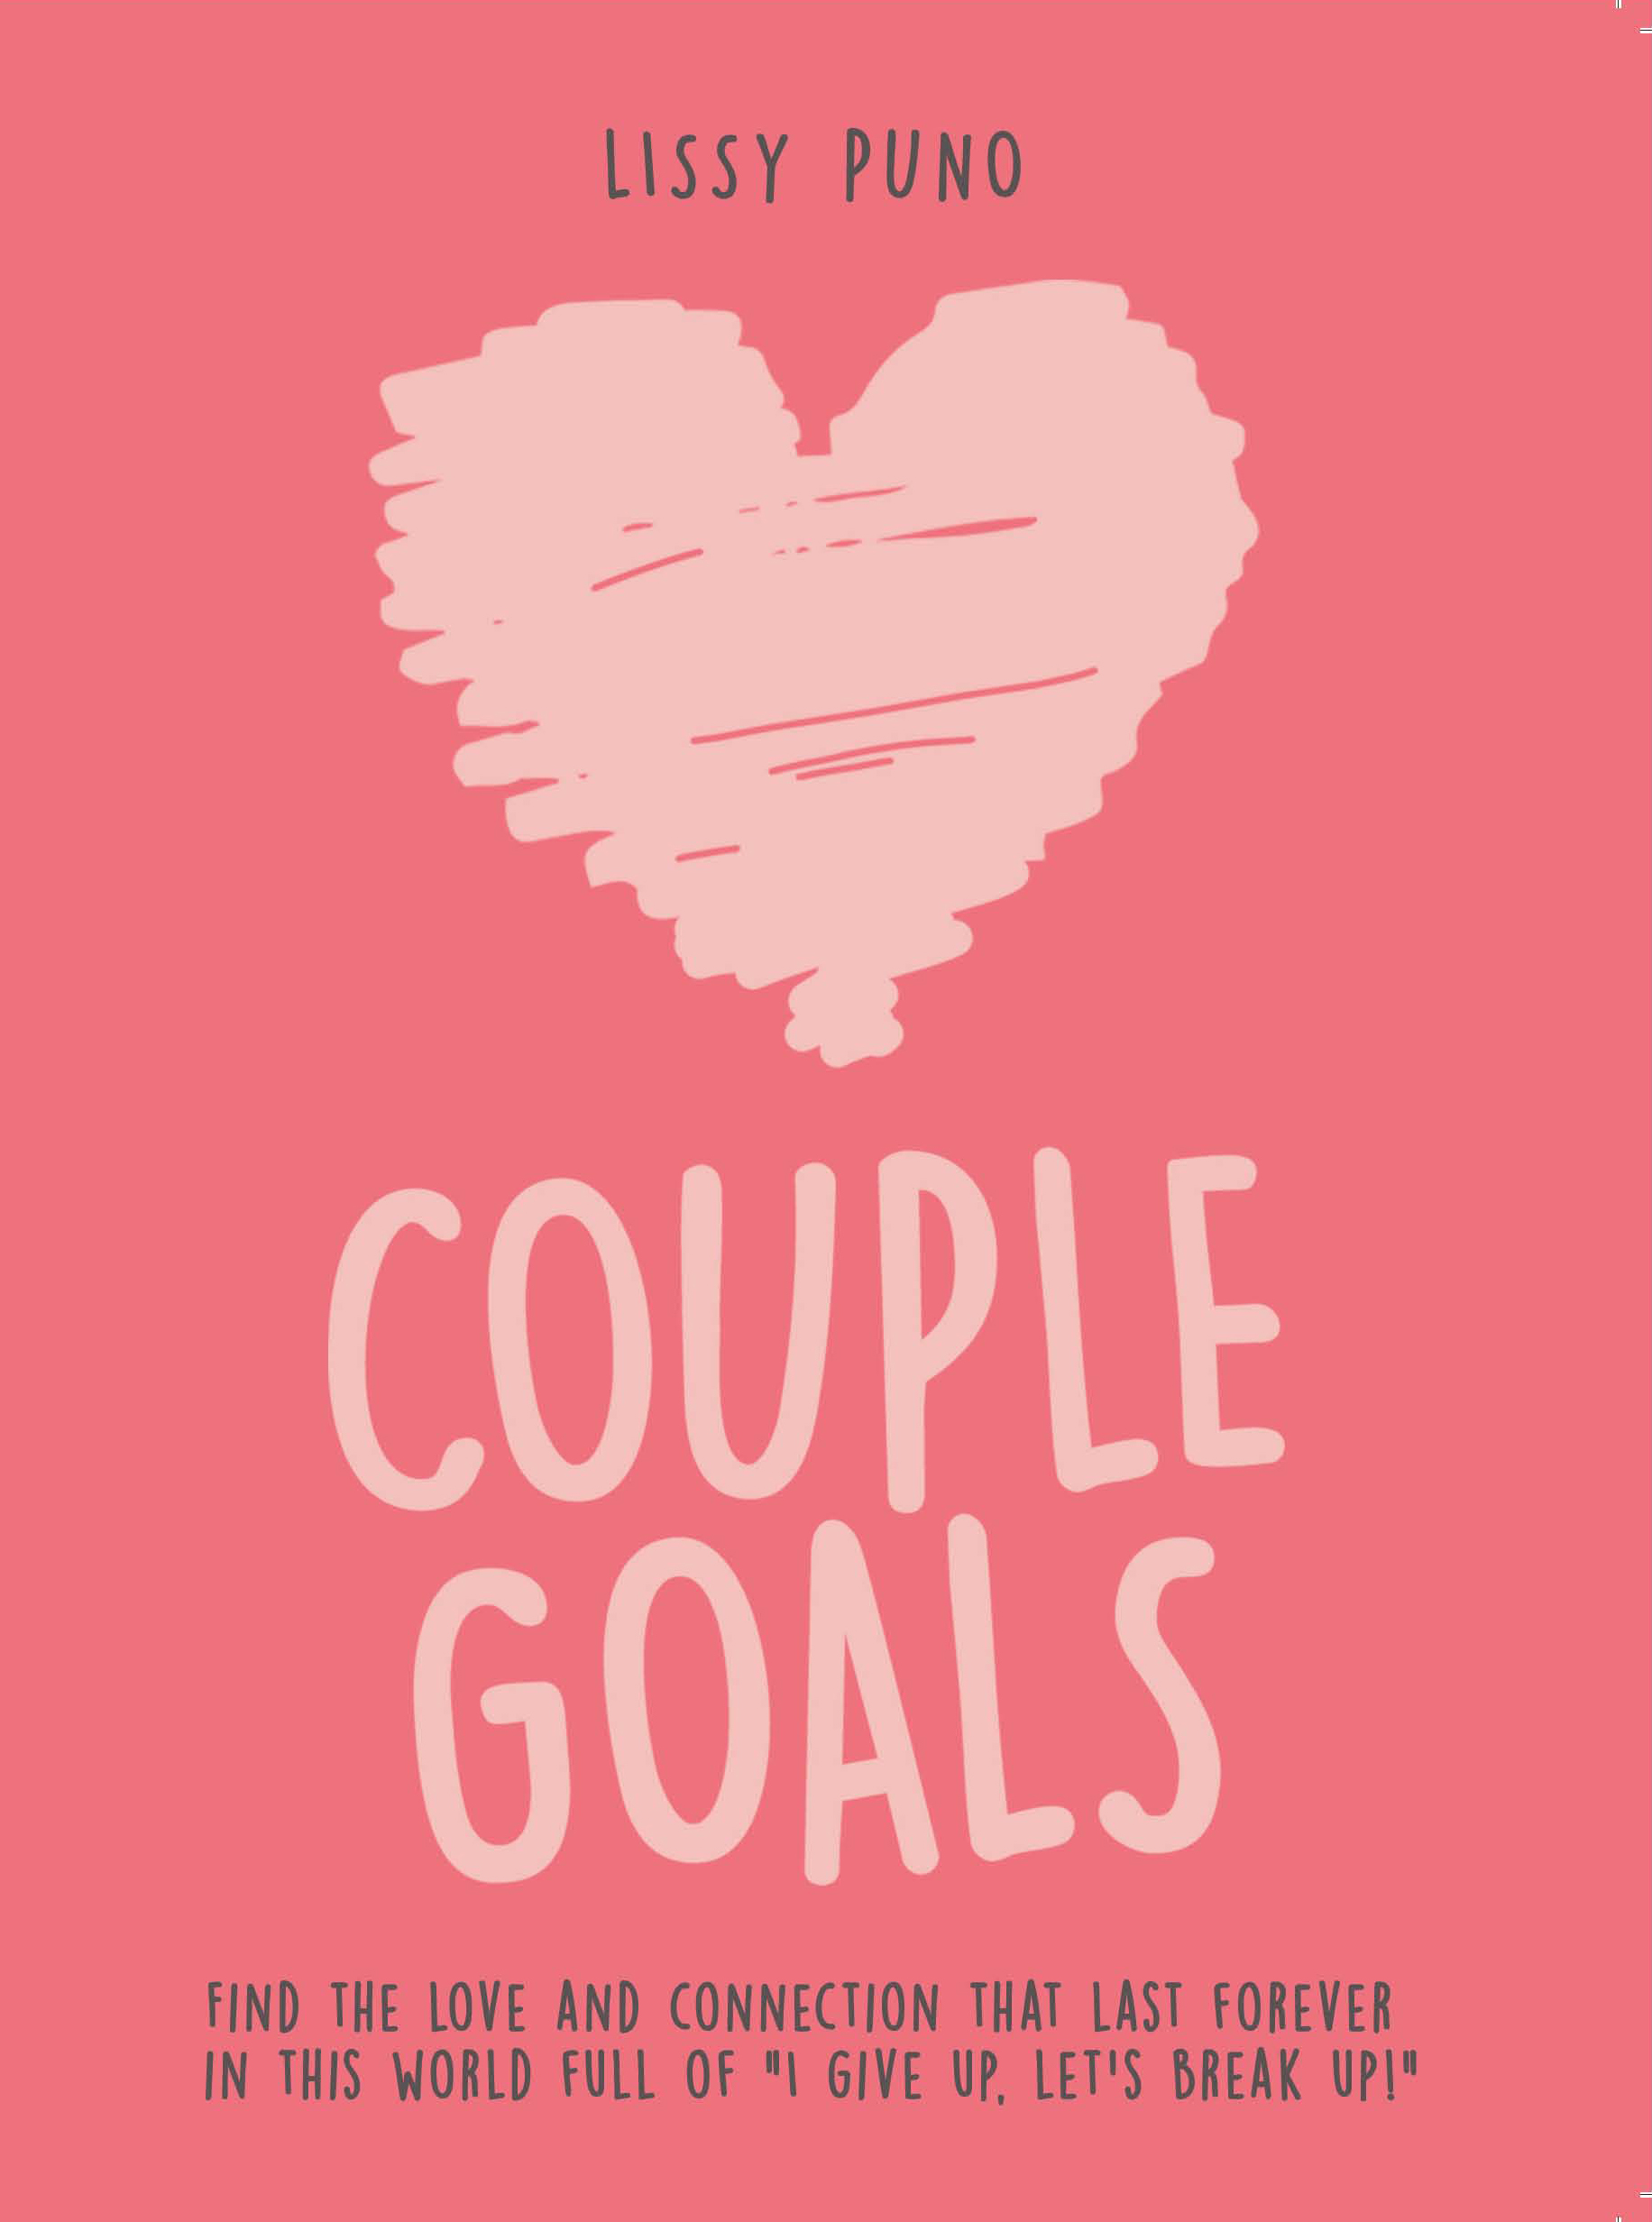 Psychologist Lissy Puno tackles 'couple goals'